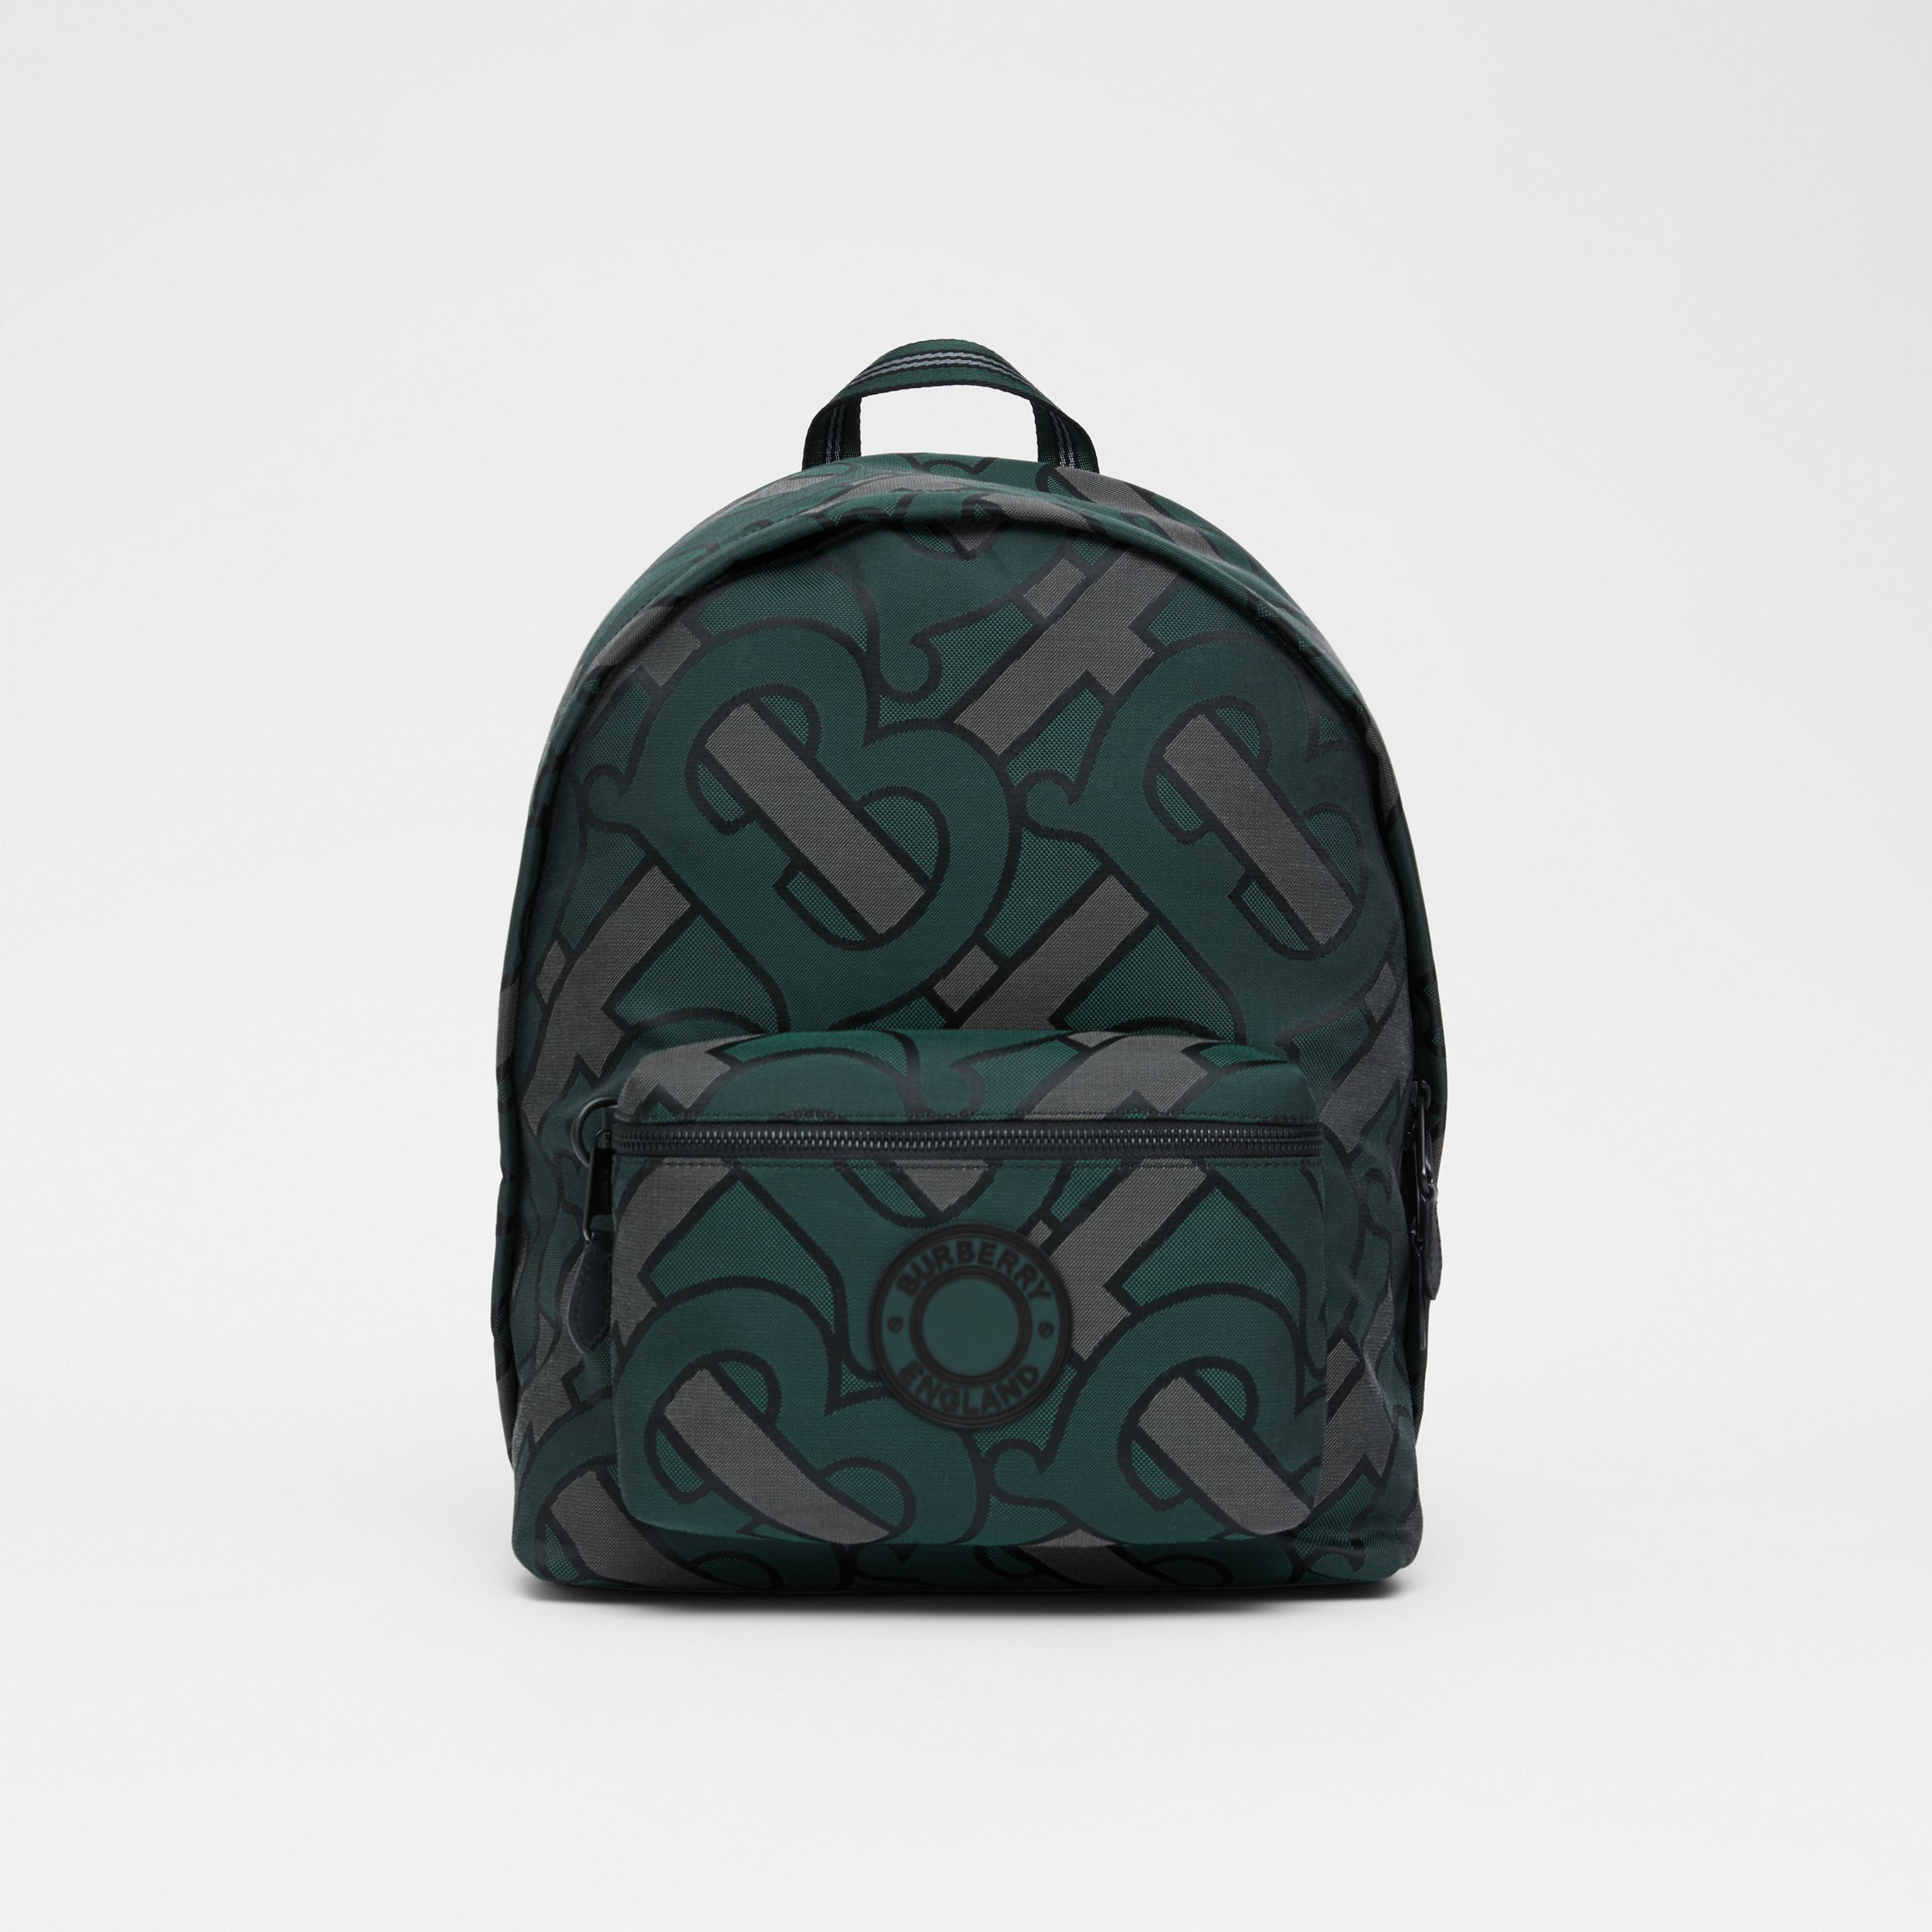 Monogram Recycled Polyester Jacquard Backpack in Forest Green - Men | Burberry - 1